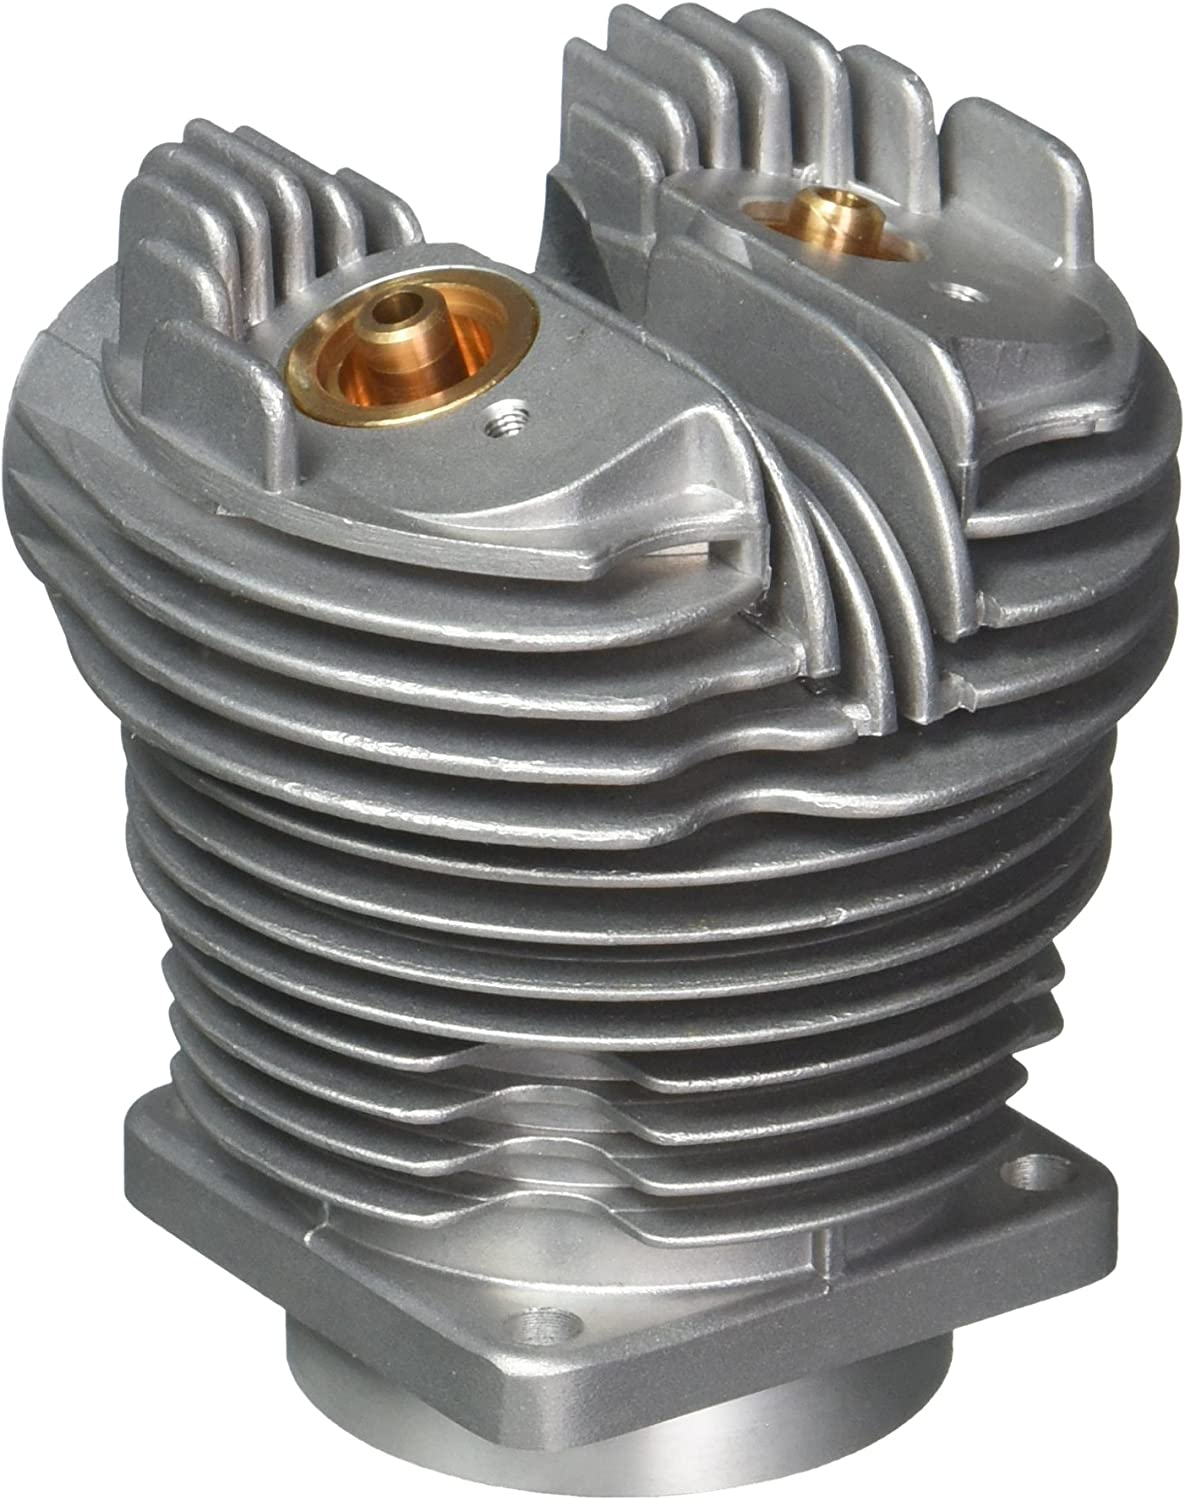 Saito Engines Cylinder :BG Right Discount is Free shipping also underway